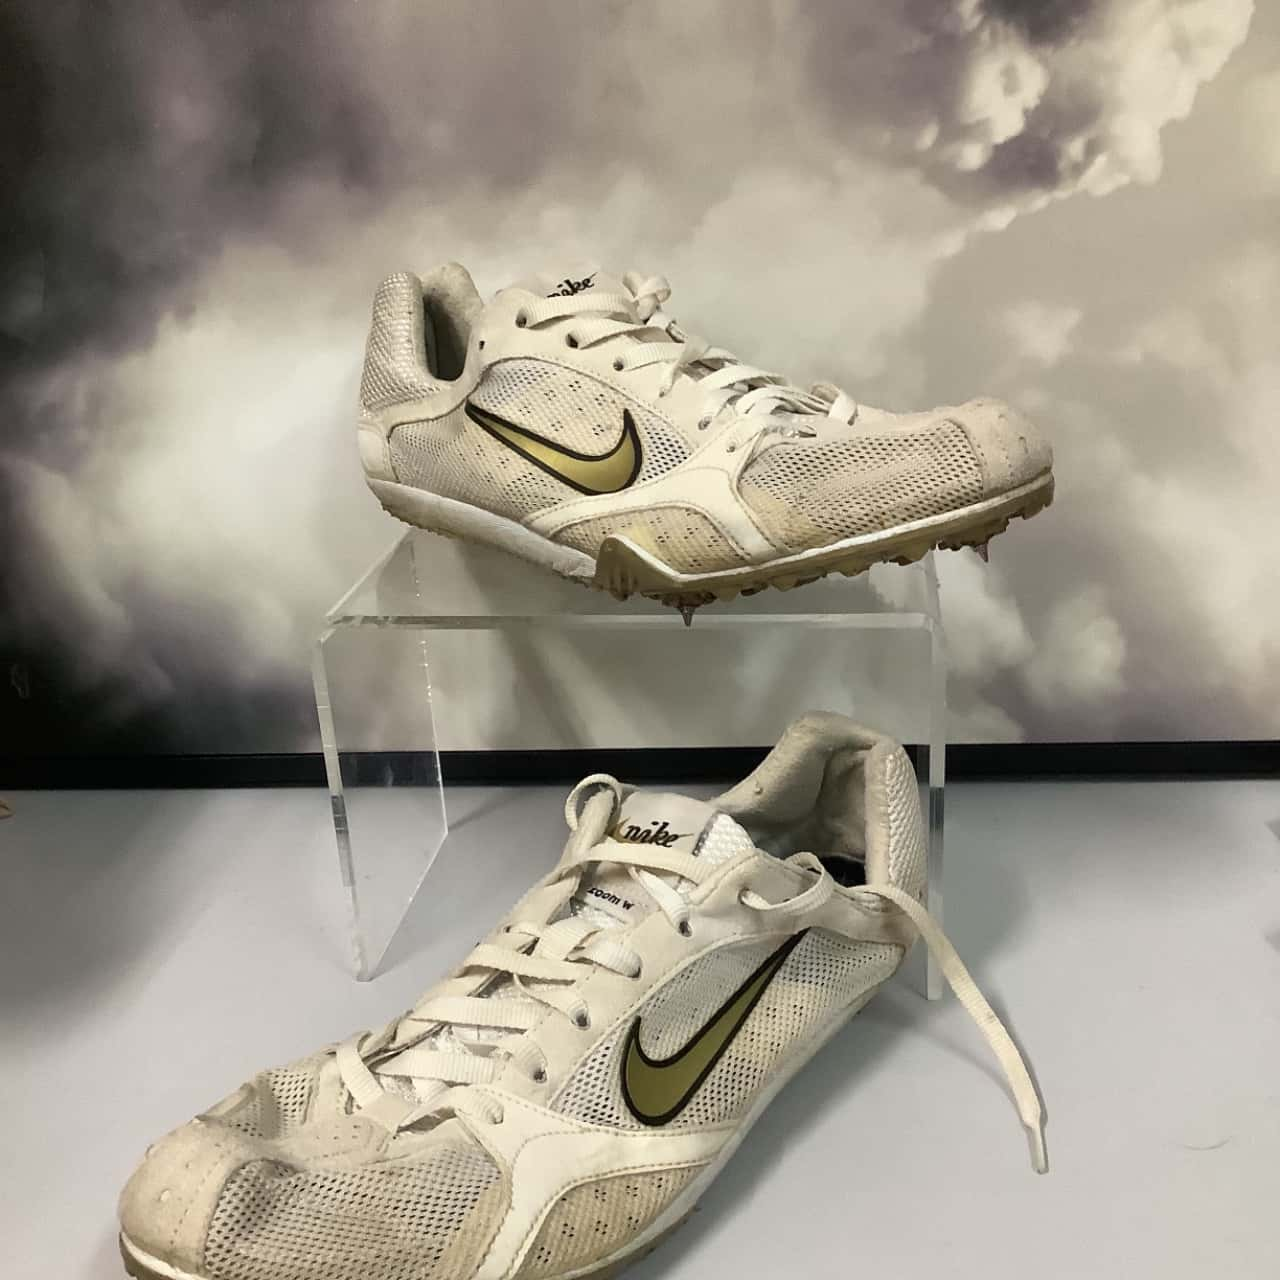 Nike Zoom  track and field shoes Womens 8US white mesh and gold good used condition